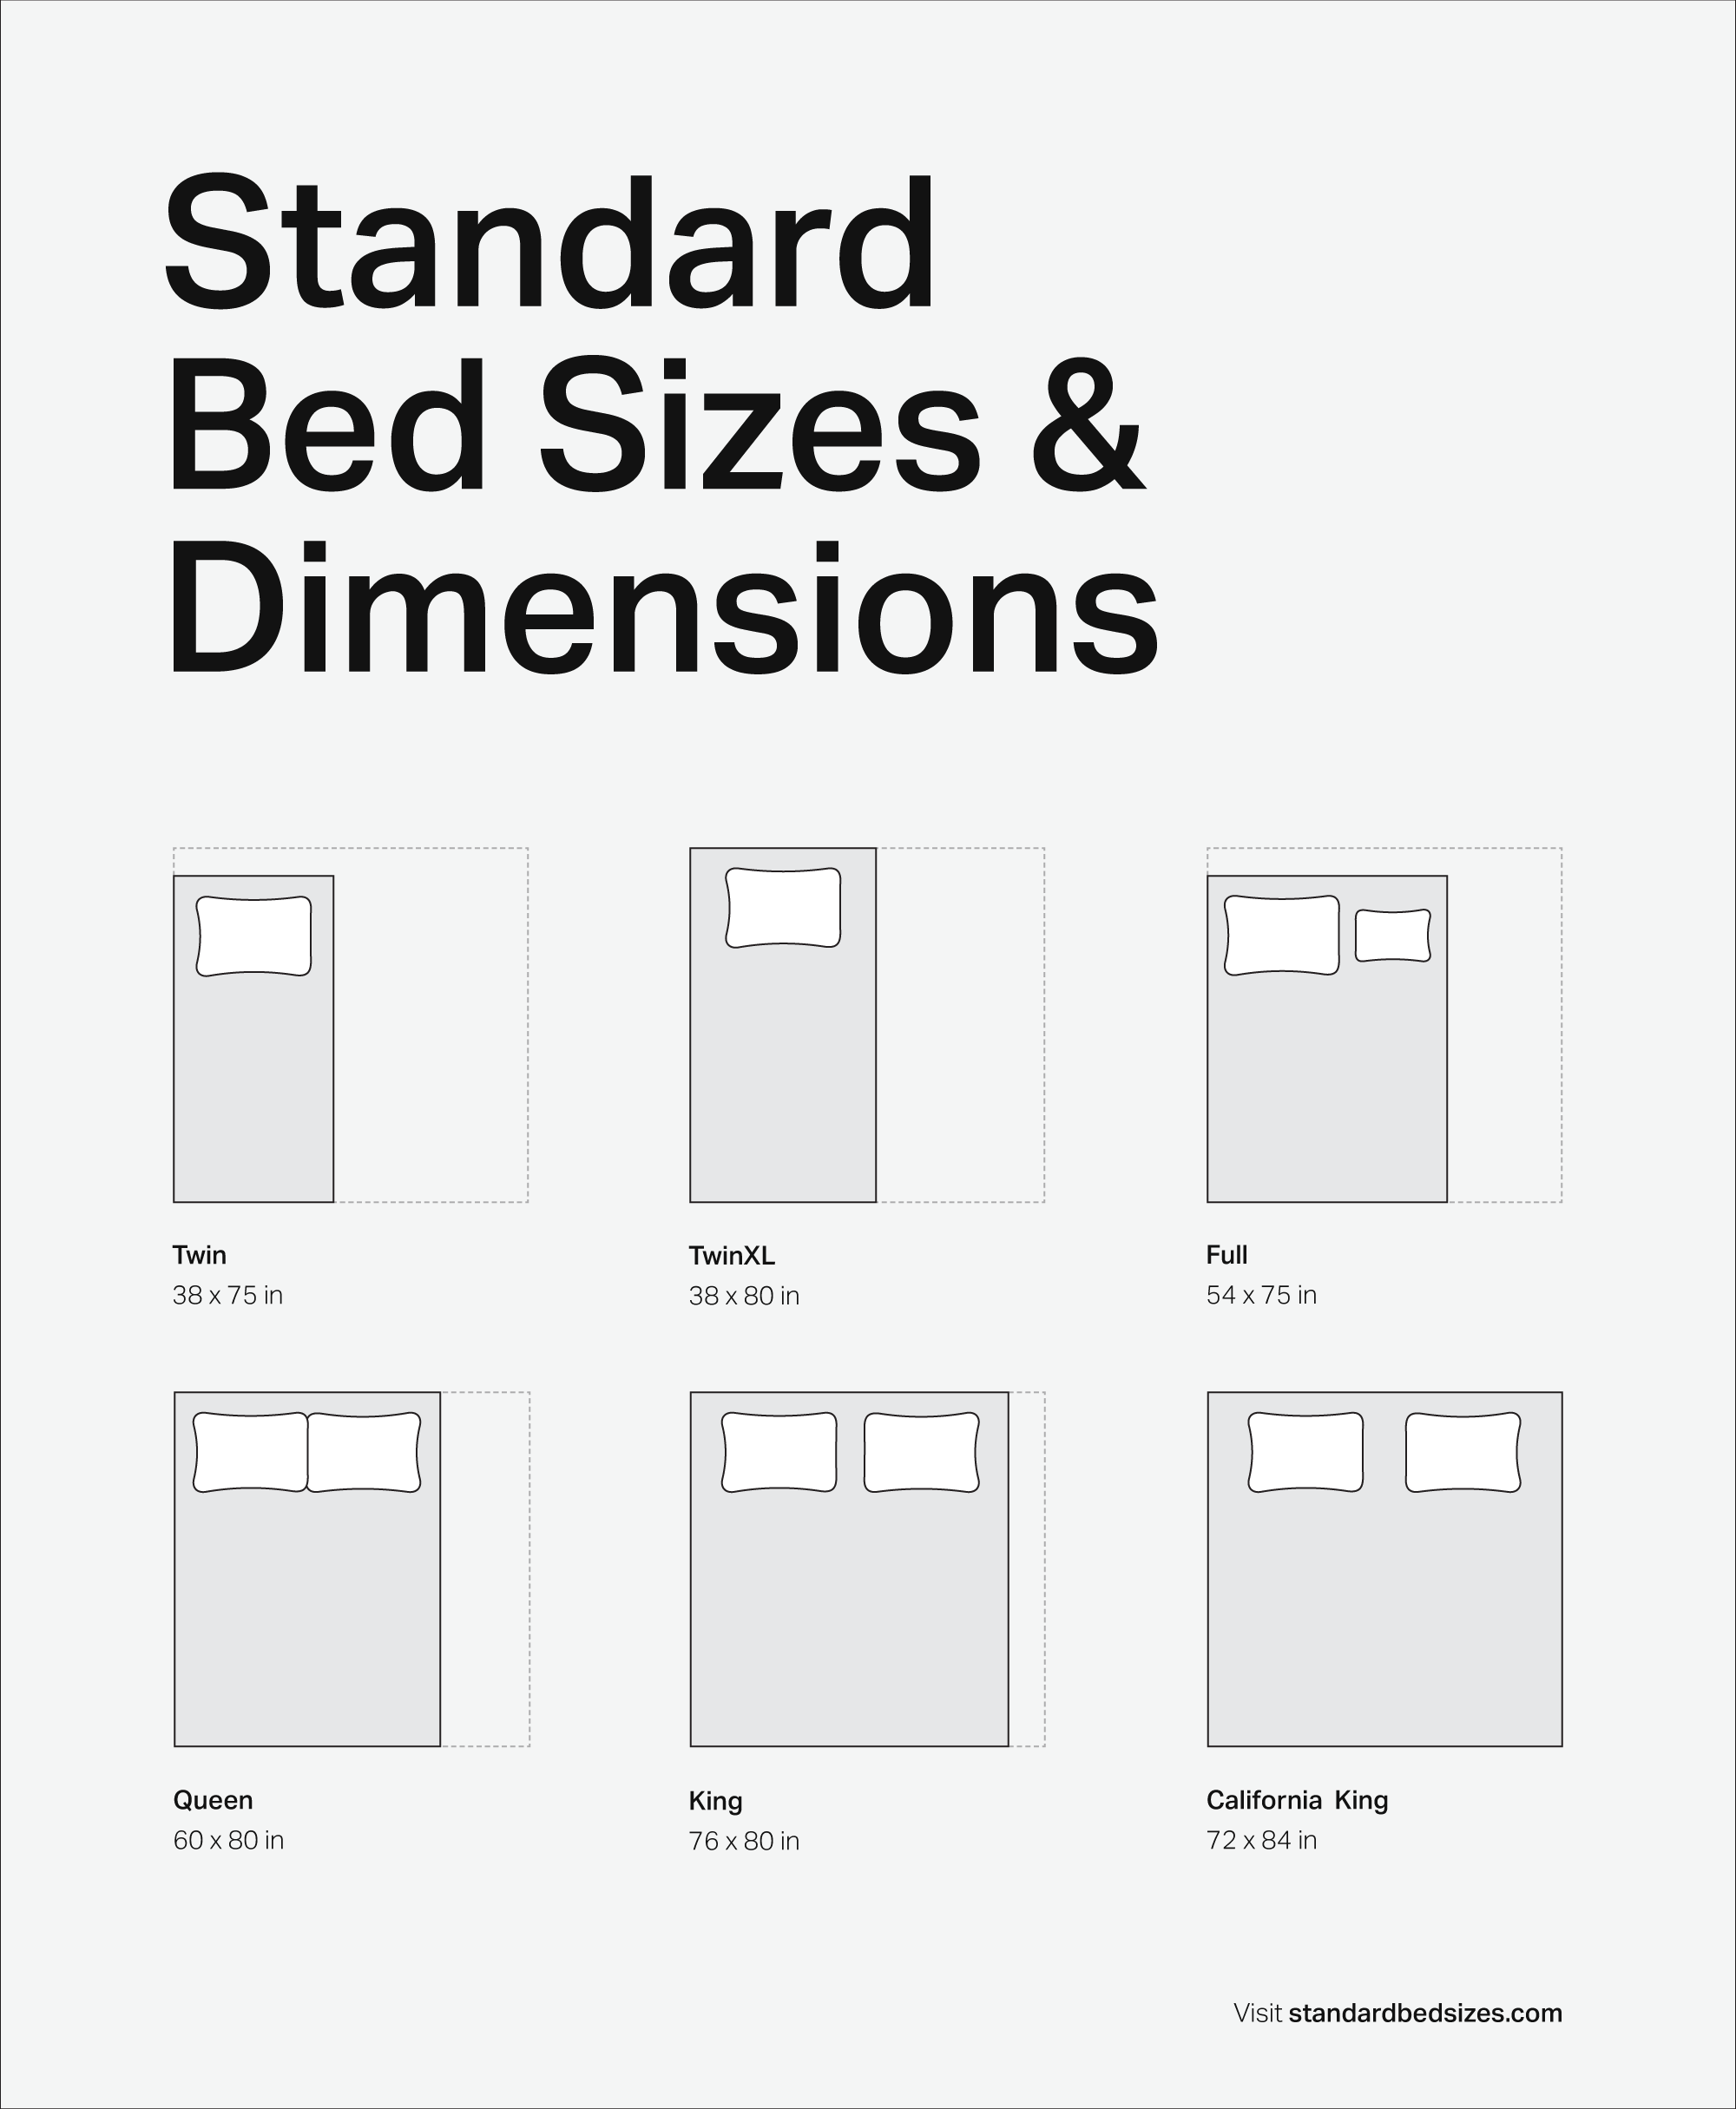 Bed Sizes Amp Dimensions Guide Standardbedsizes Com